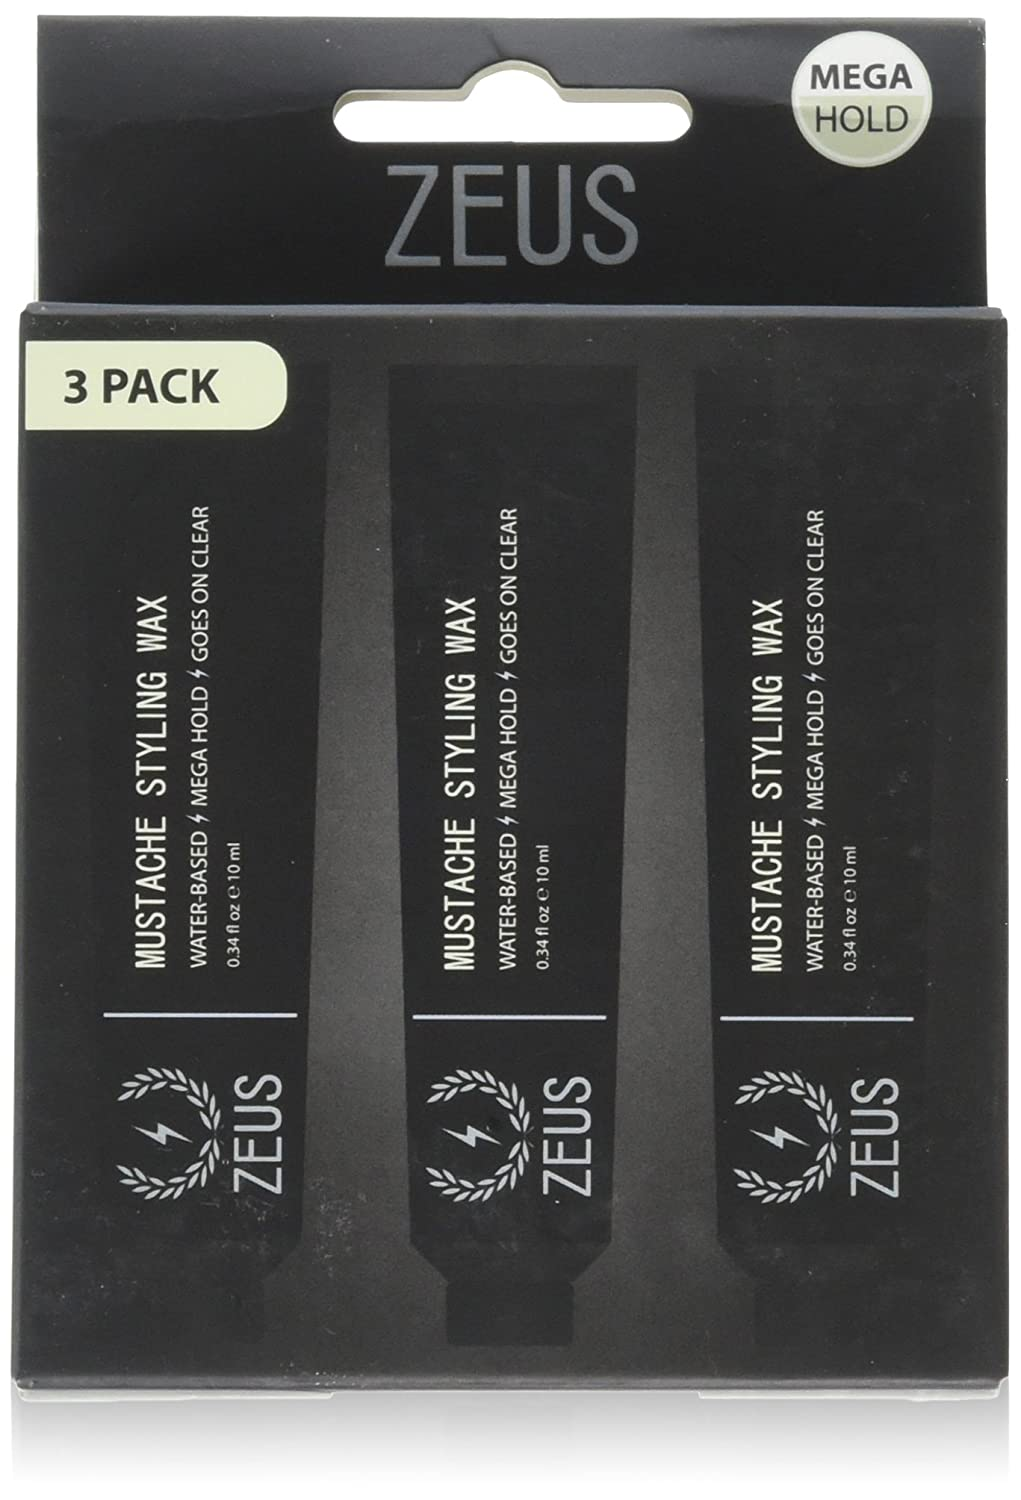 ZEUS Mustache Styling Wax, 3 Count Newport Apothecary Inc.